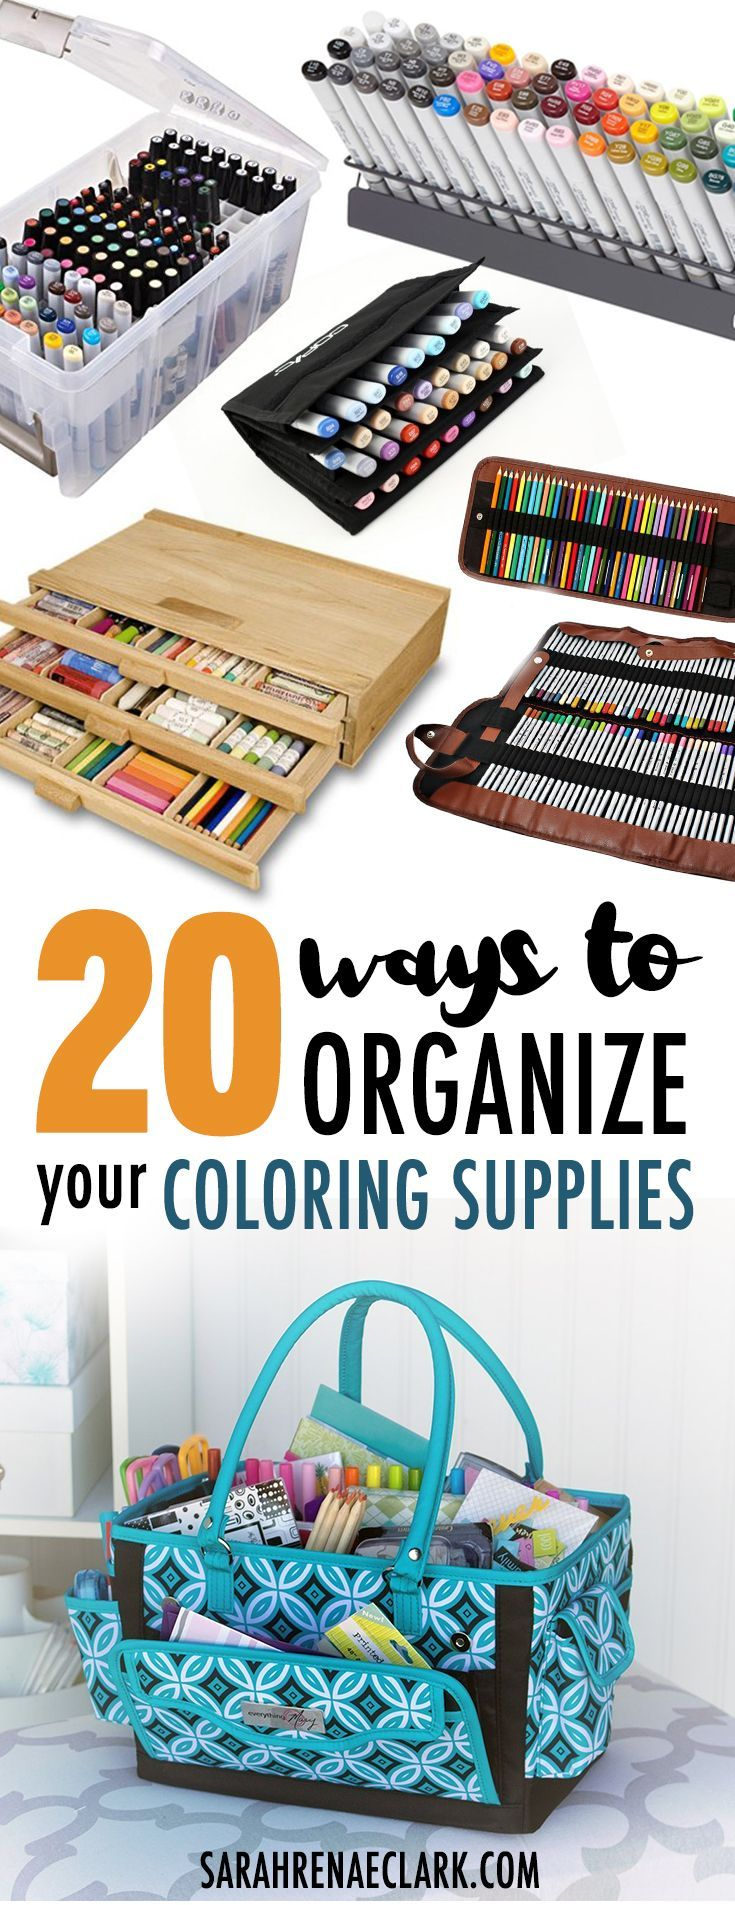 20 Clever Ways To Organize Your Coloring Supplies Coloring Book Storage Art Supplies Storage Art Supply Organization